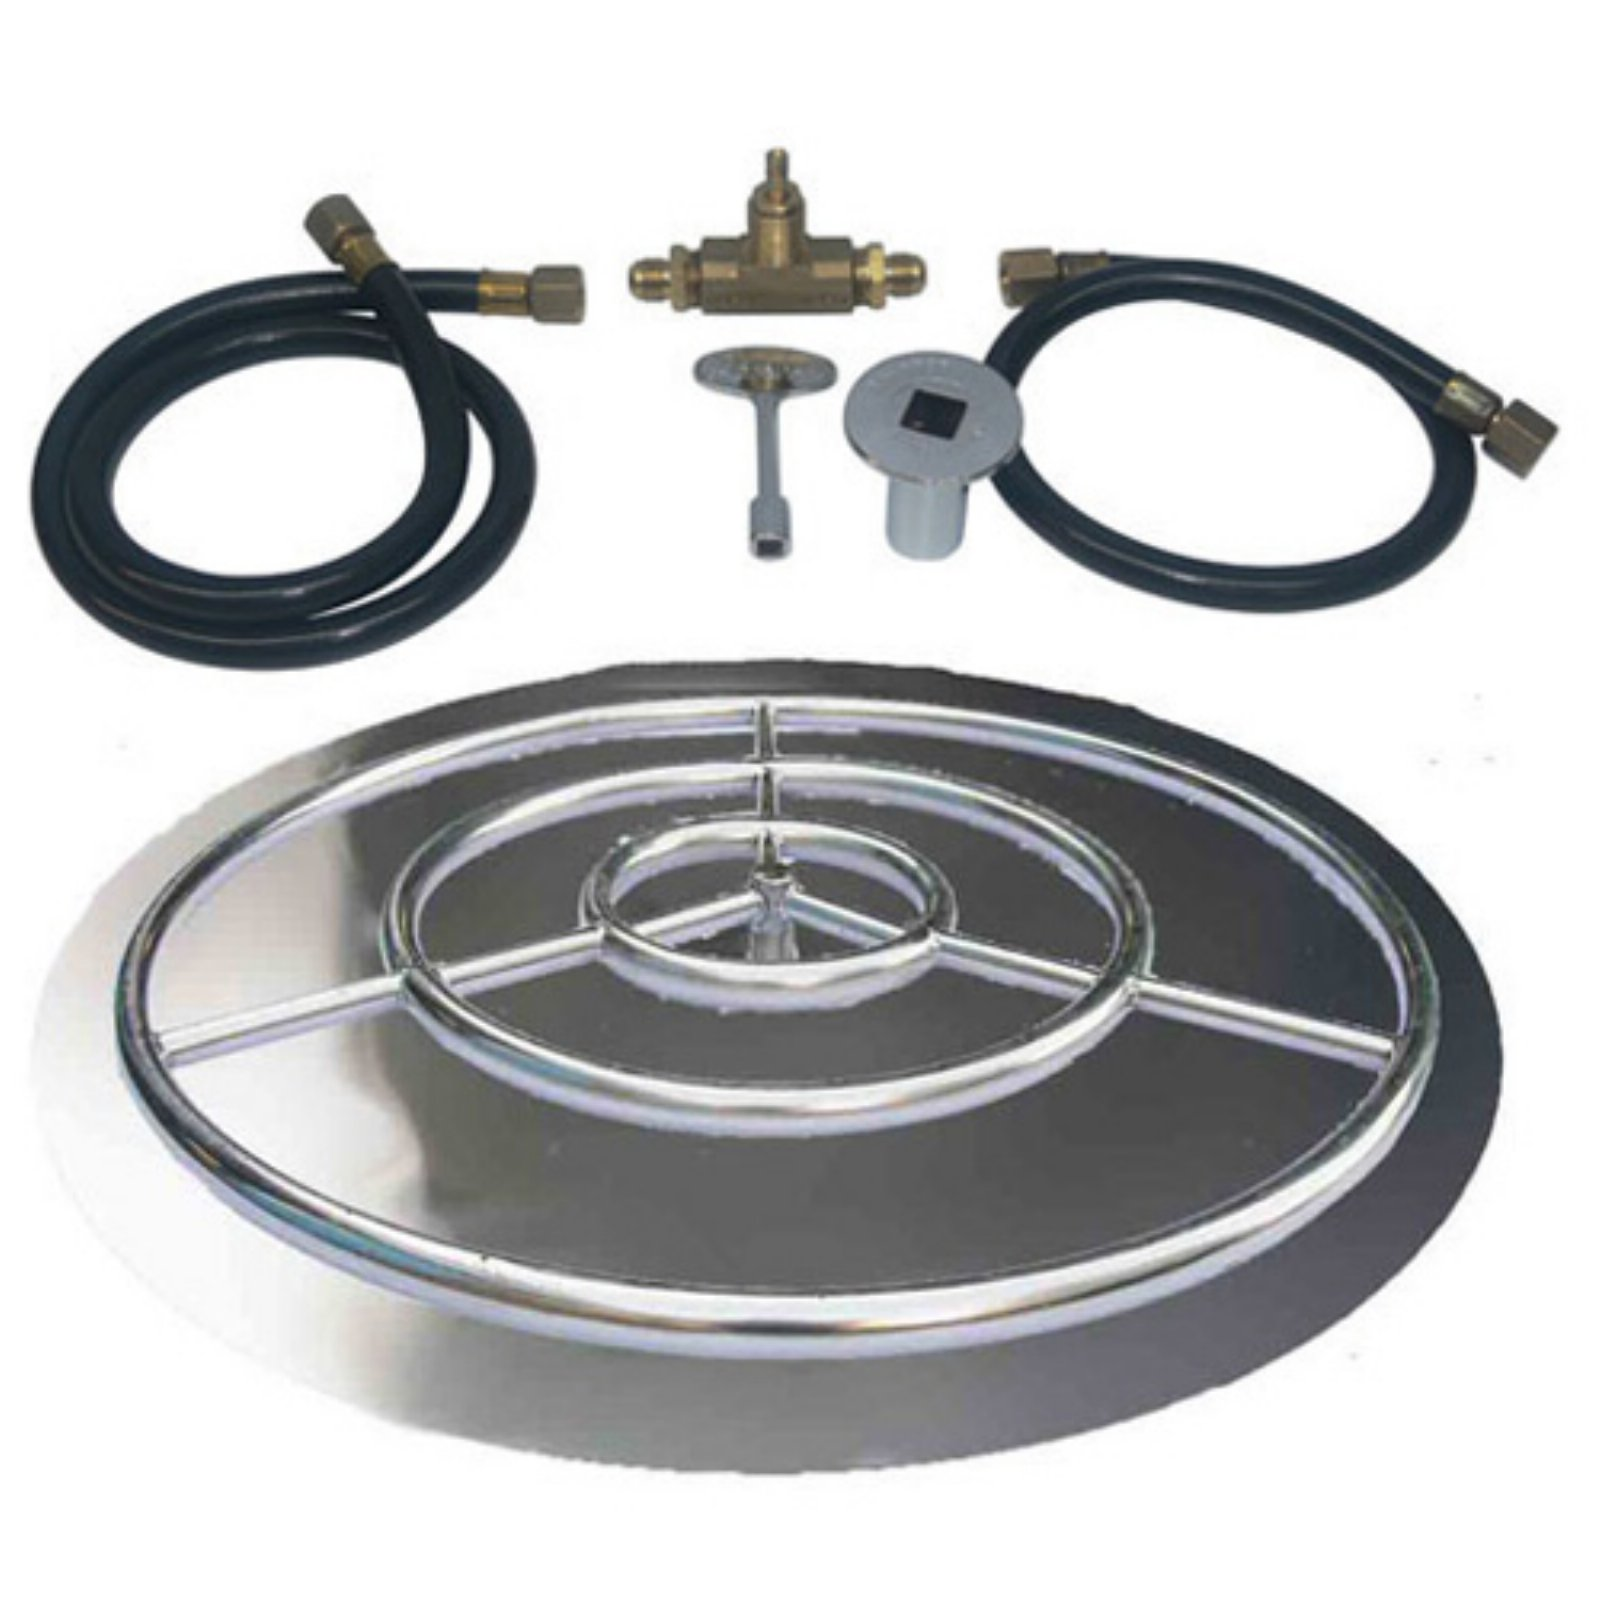 Tretco Stainless Steel Fire Pit Pan Ring Kit